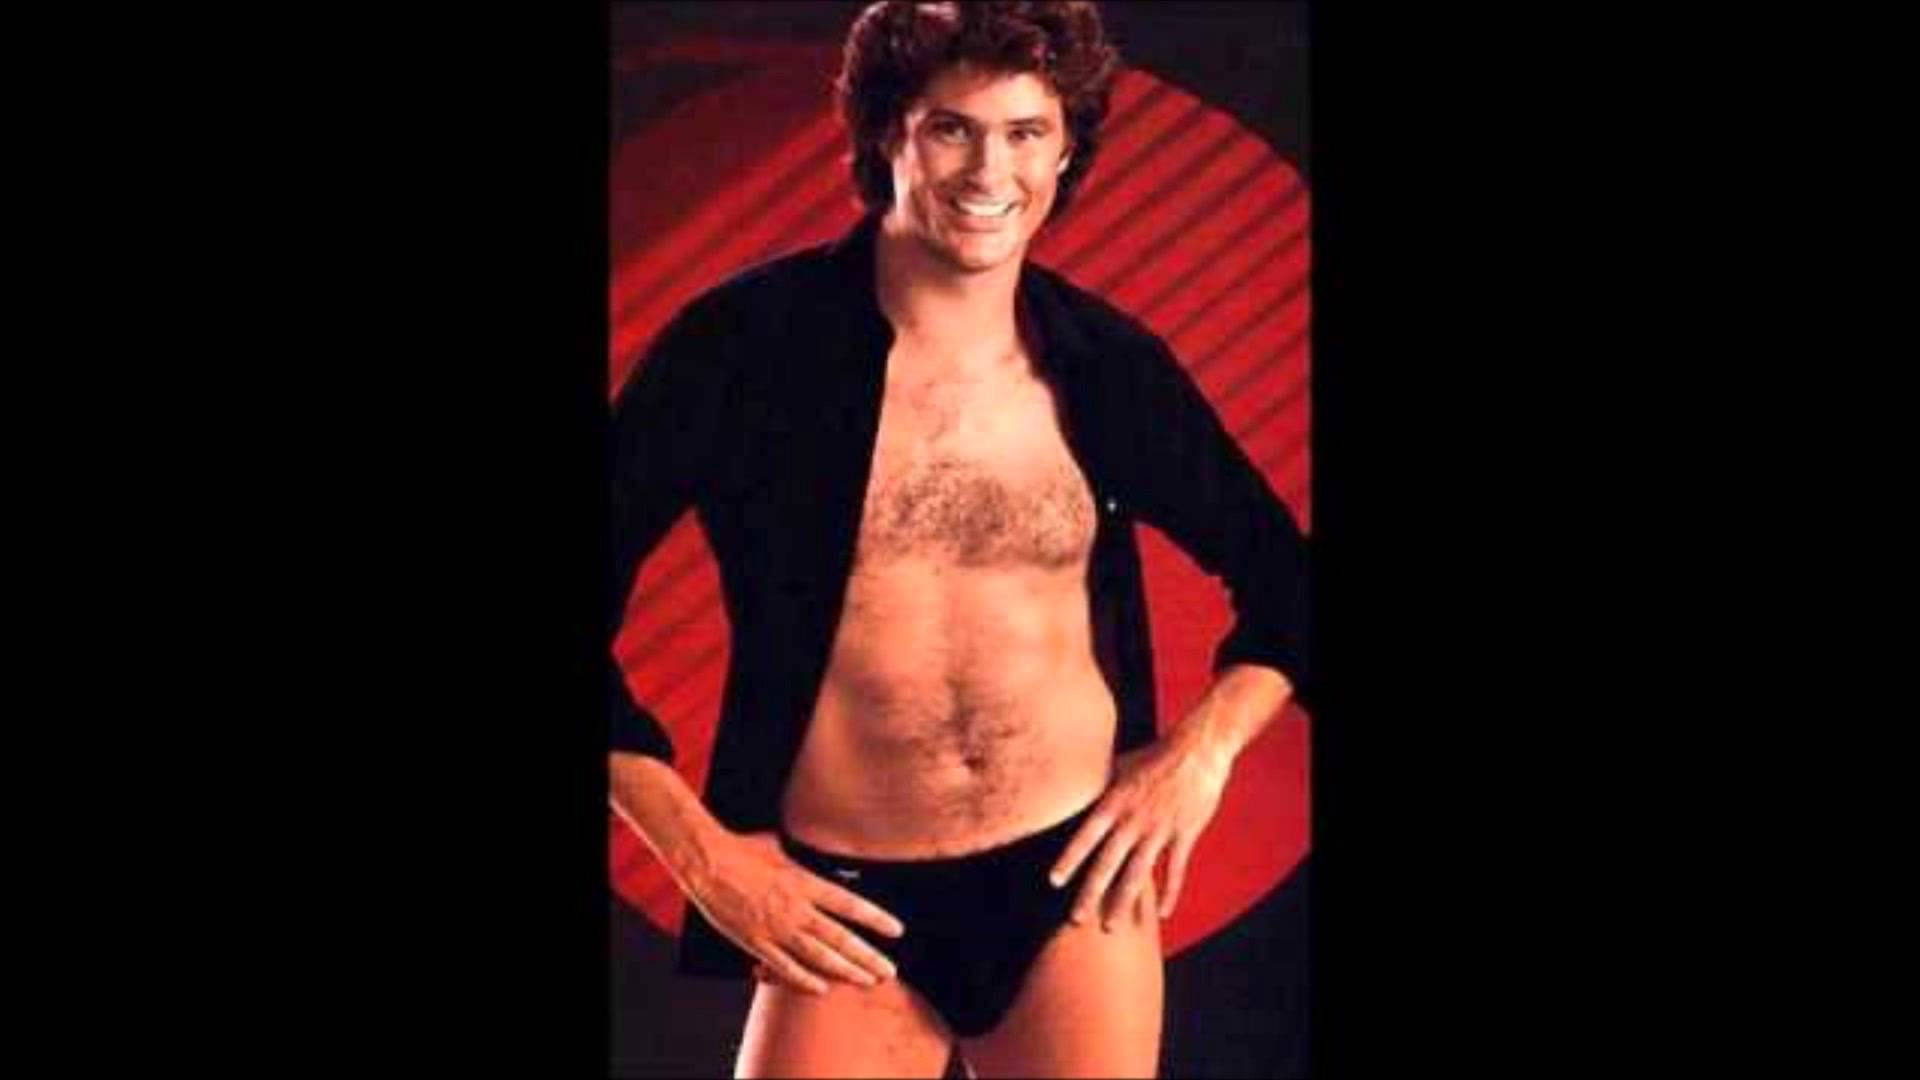 Download David Hasselhoff Wallpaper Gallery